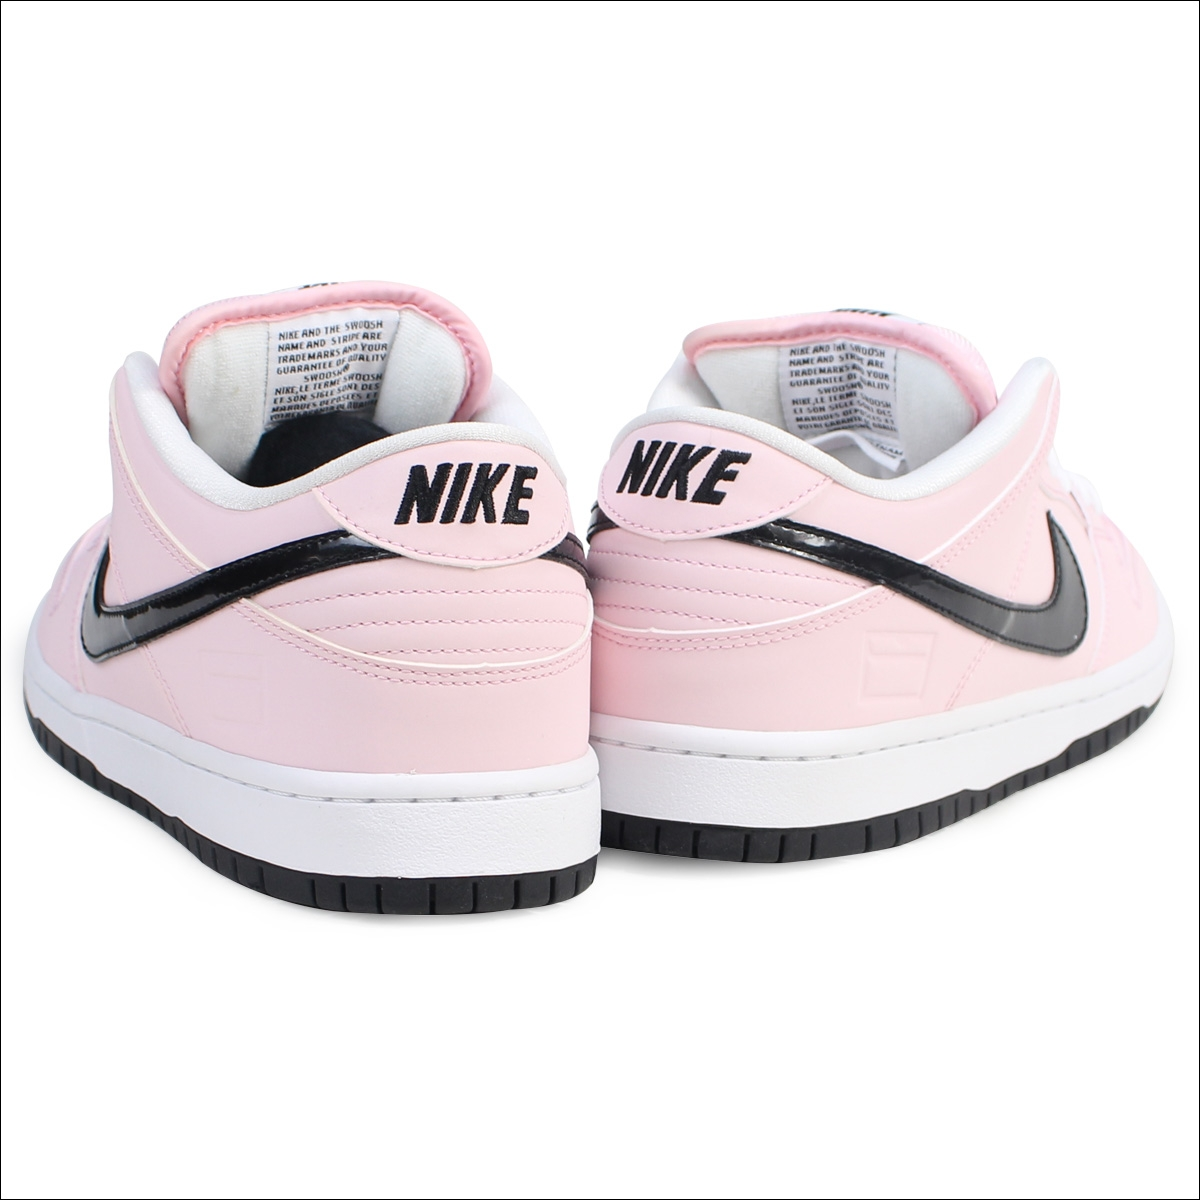 76d99aaa1600 Whats up Sports  Nike NIKE SB dunk low sneakers DUNK LOW ELITE PINK ...